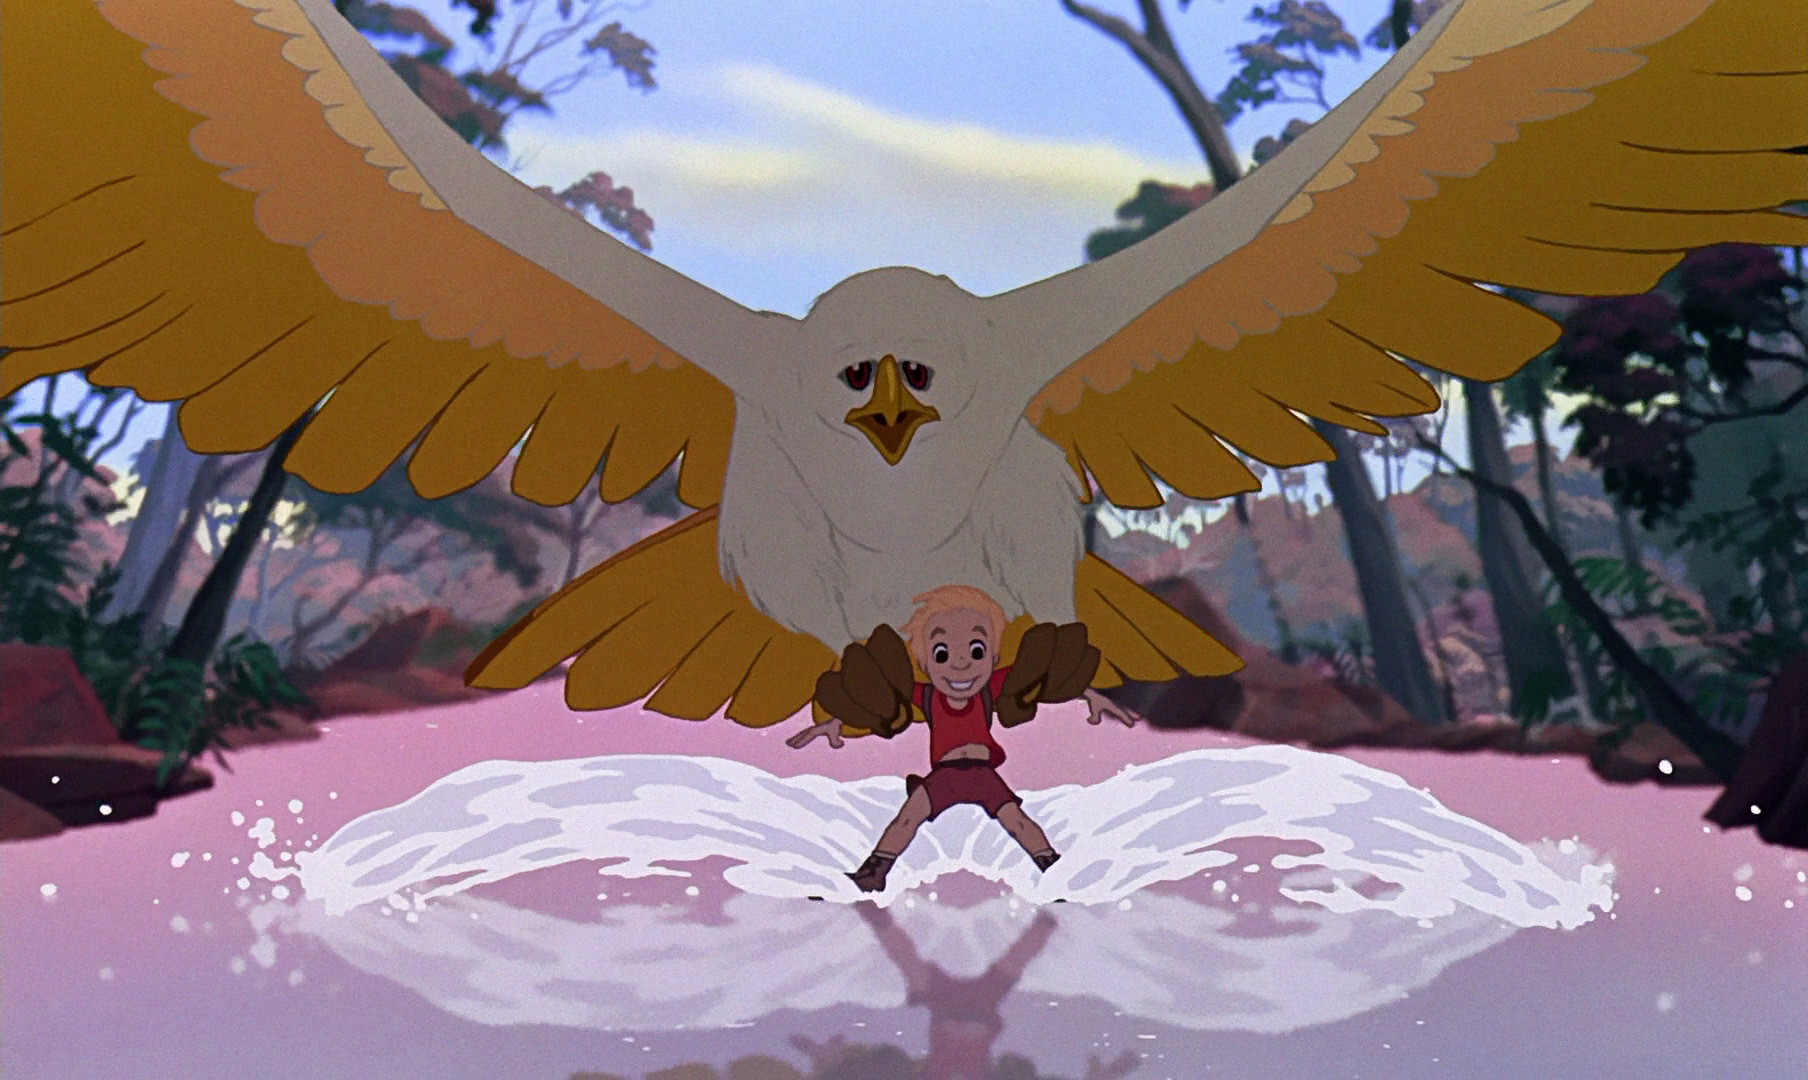 Australia (The Rescuers Down Under)